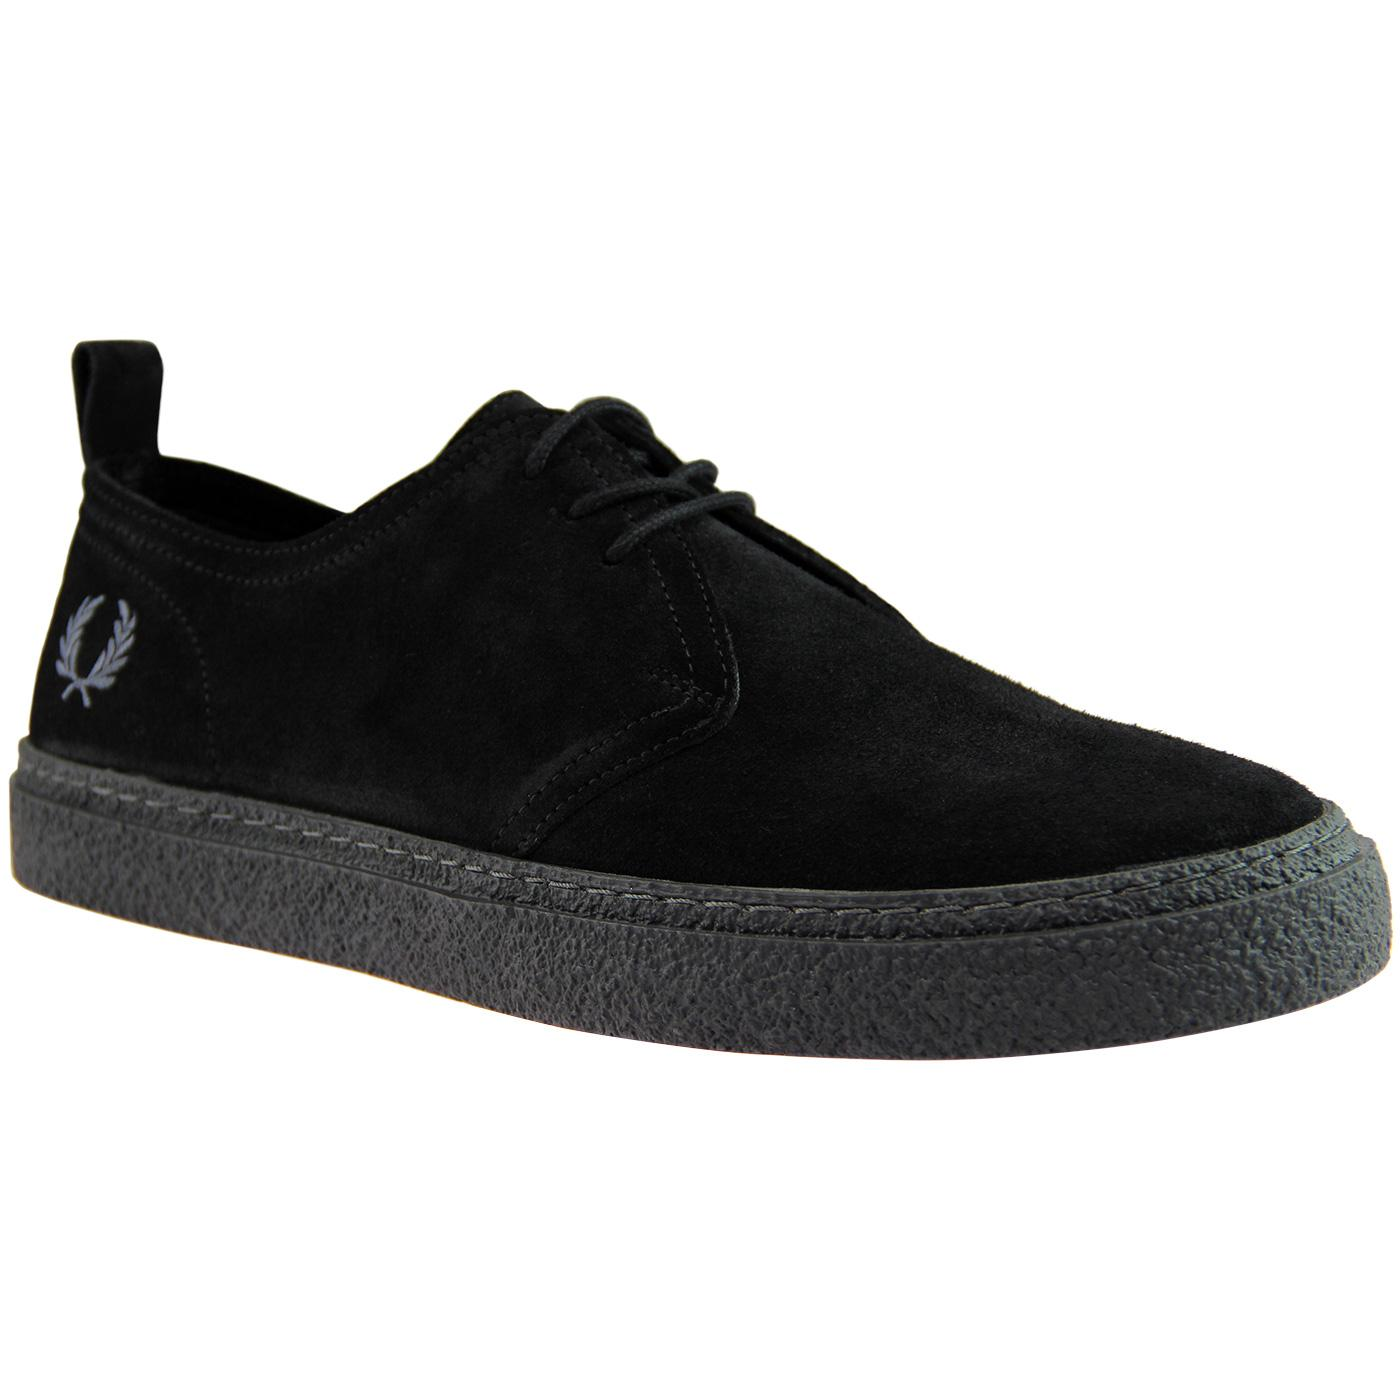 Linden FRED PERRY Retro Mod Suede Shoes - Black